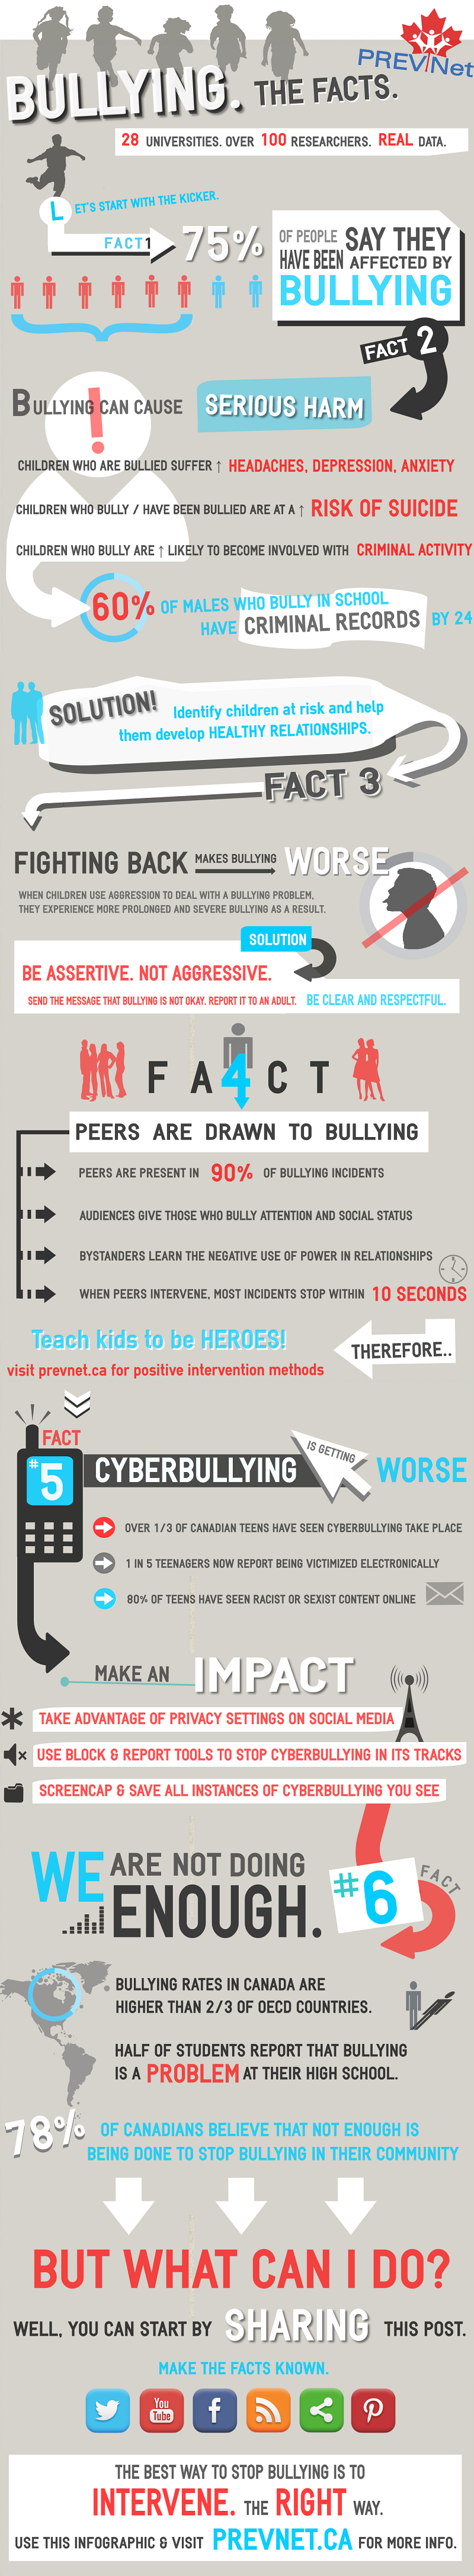 Infographic: Bullying: The Facts #infographic